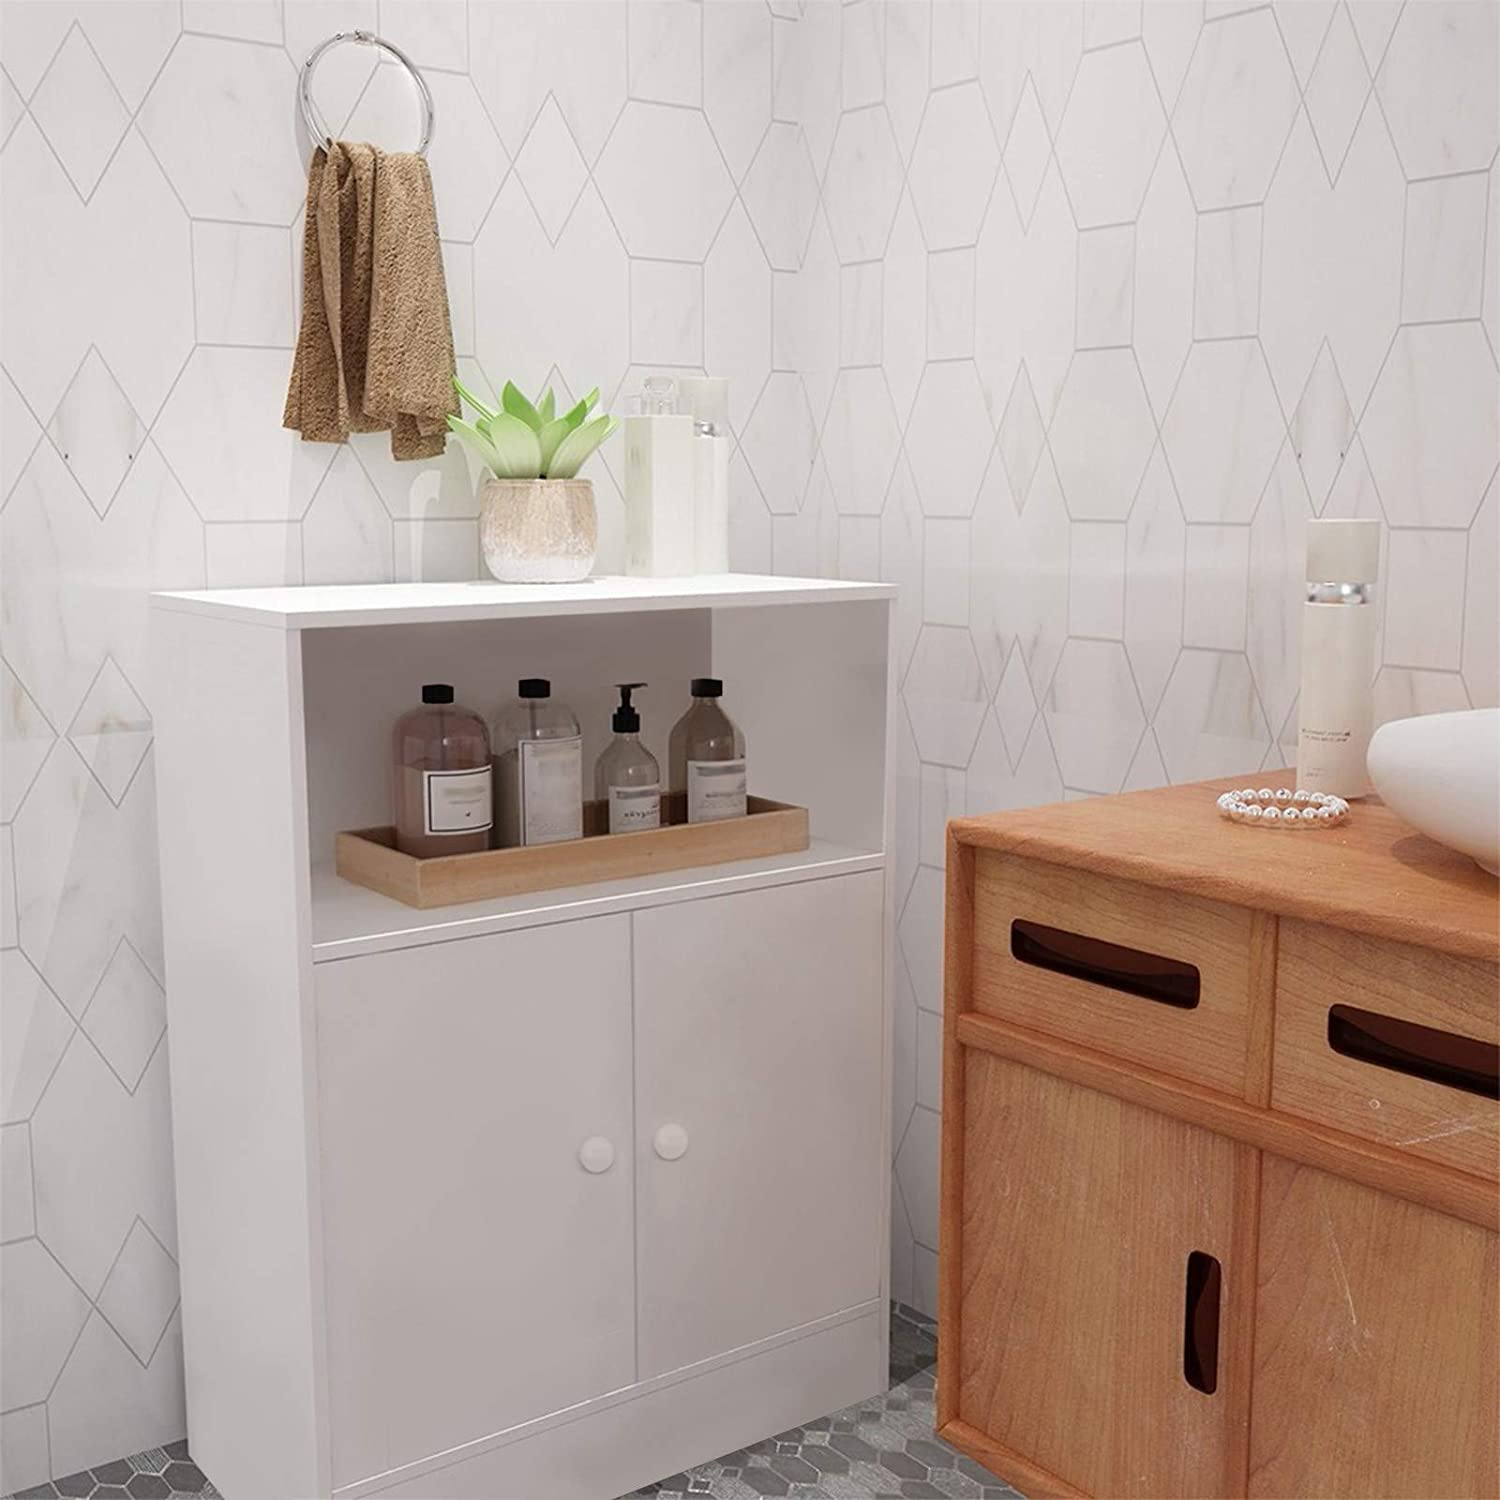 Delarsy Bathroom Storage Floor Cabinet Standing with Direct stock discount Free Two-Do Minneapolis Mall